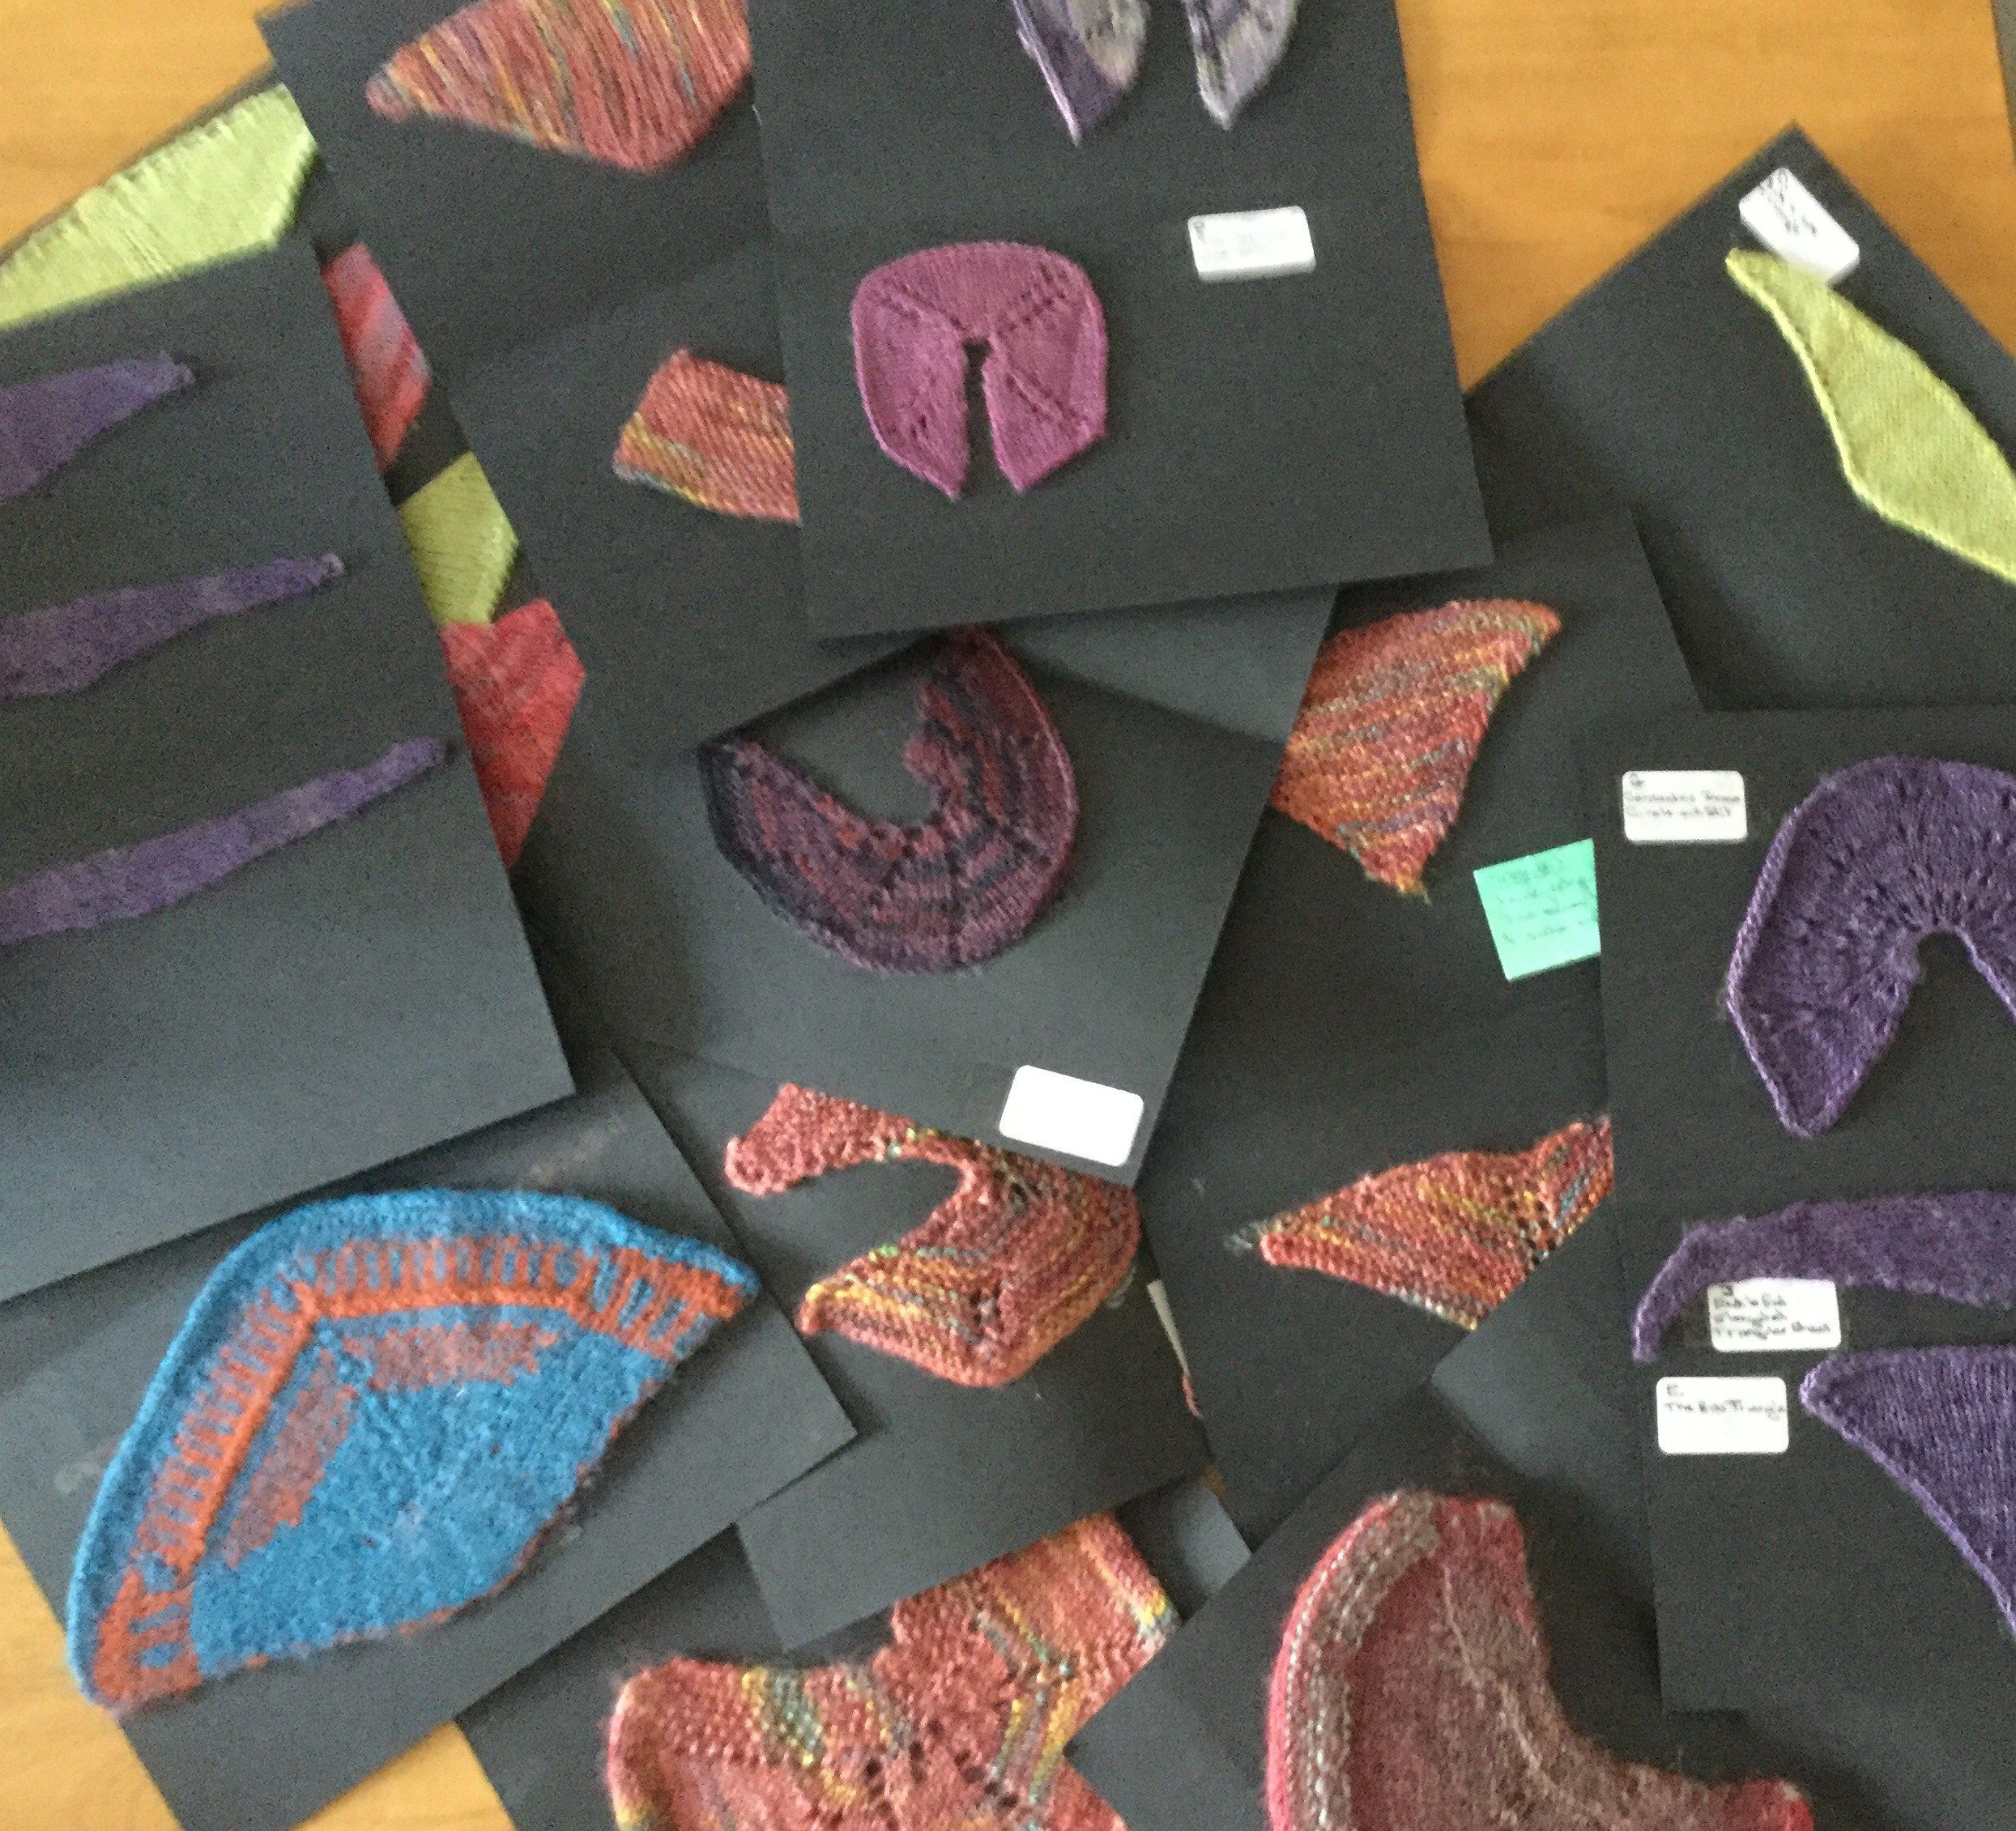 Workshop with Chrissie Day - Shawl shaping – become a better shawl designer  We will take basic shawl shapes and learn the construction techniques before design and pattern and colour  are added. We will look at some  in detail and knit these up in miniature for reference  Patterns provided to take home